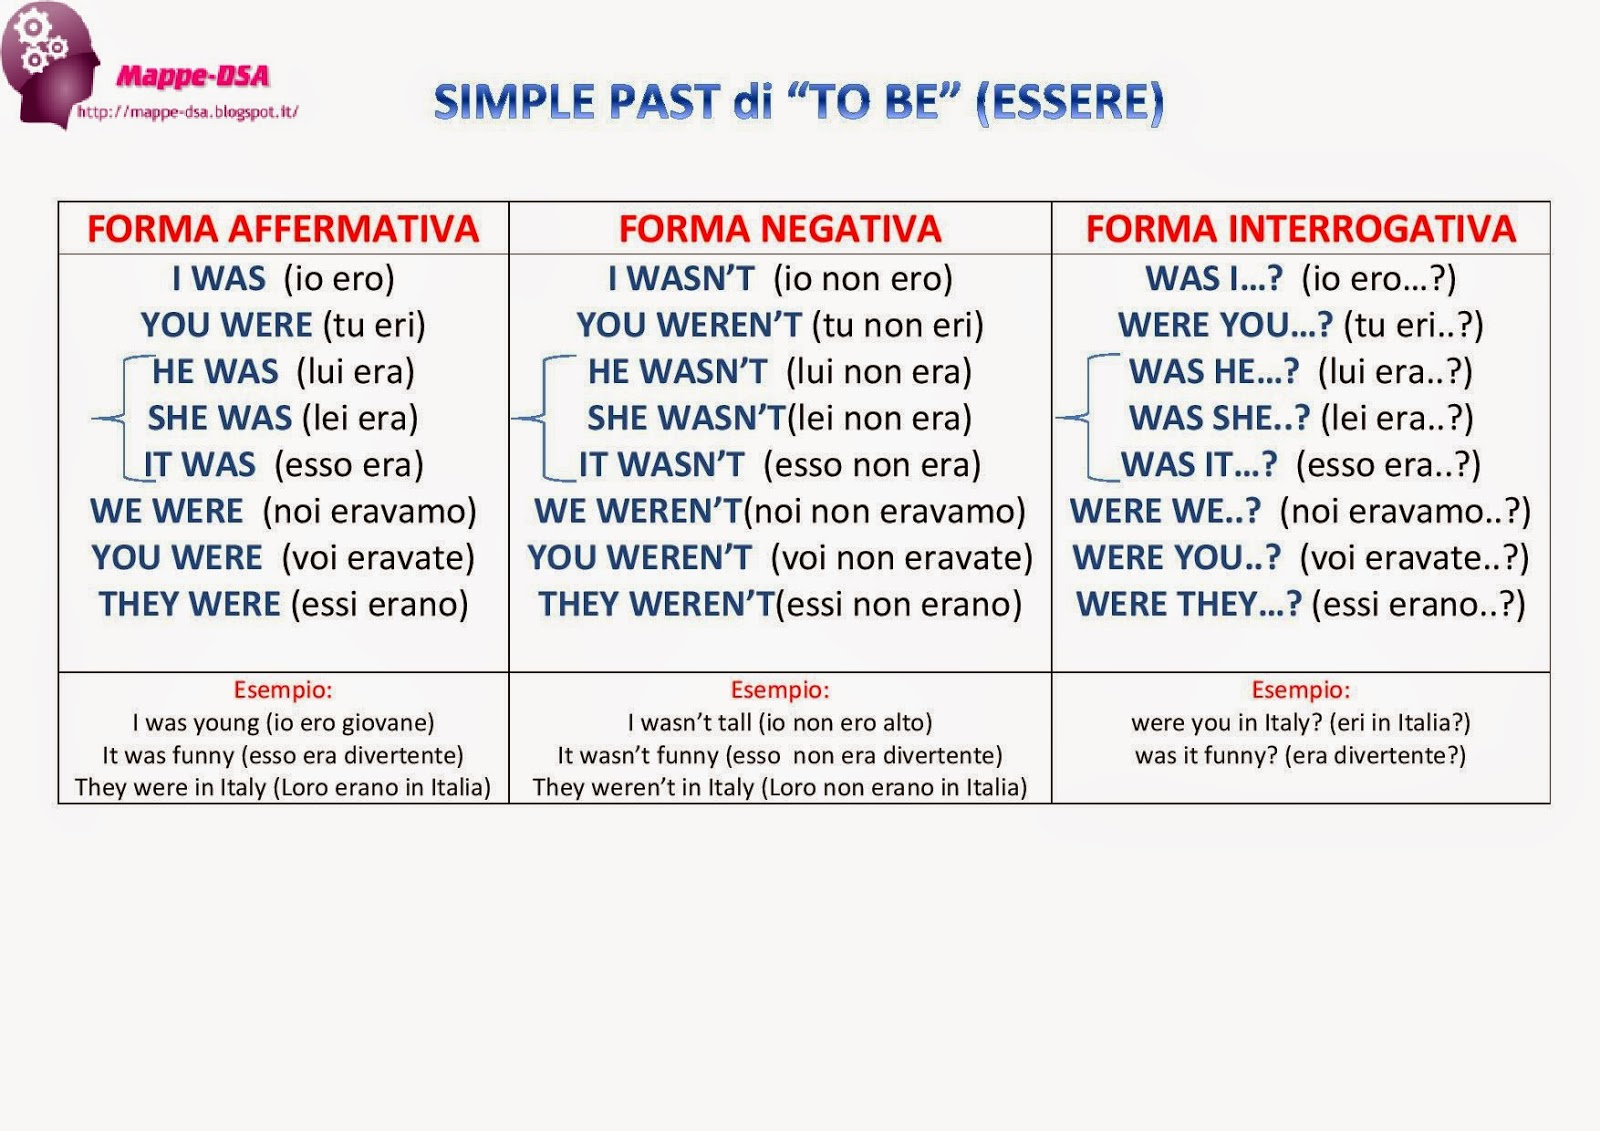 mappa tabella verbi inglese dsa to be simple past